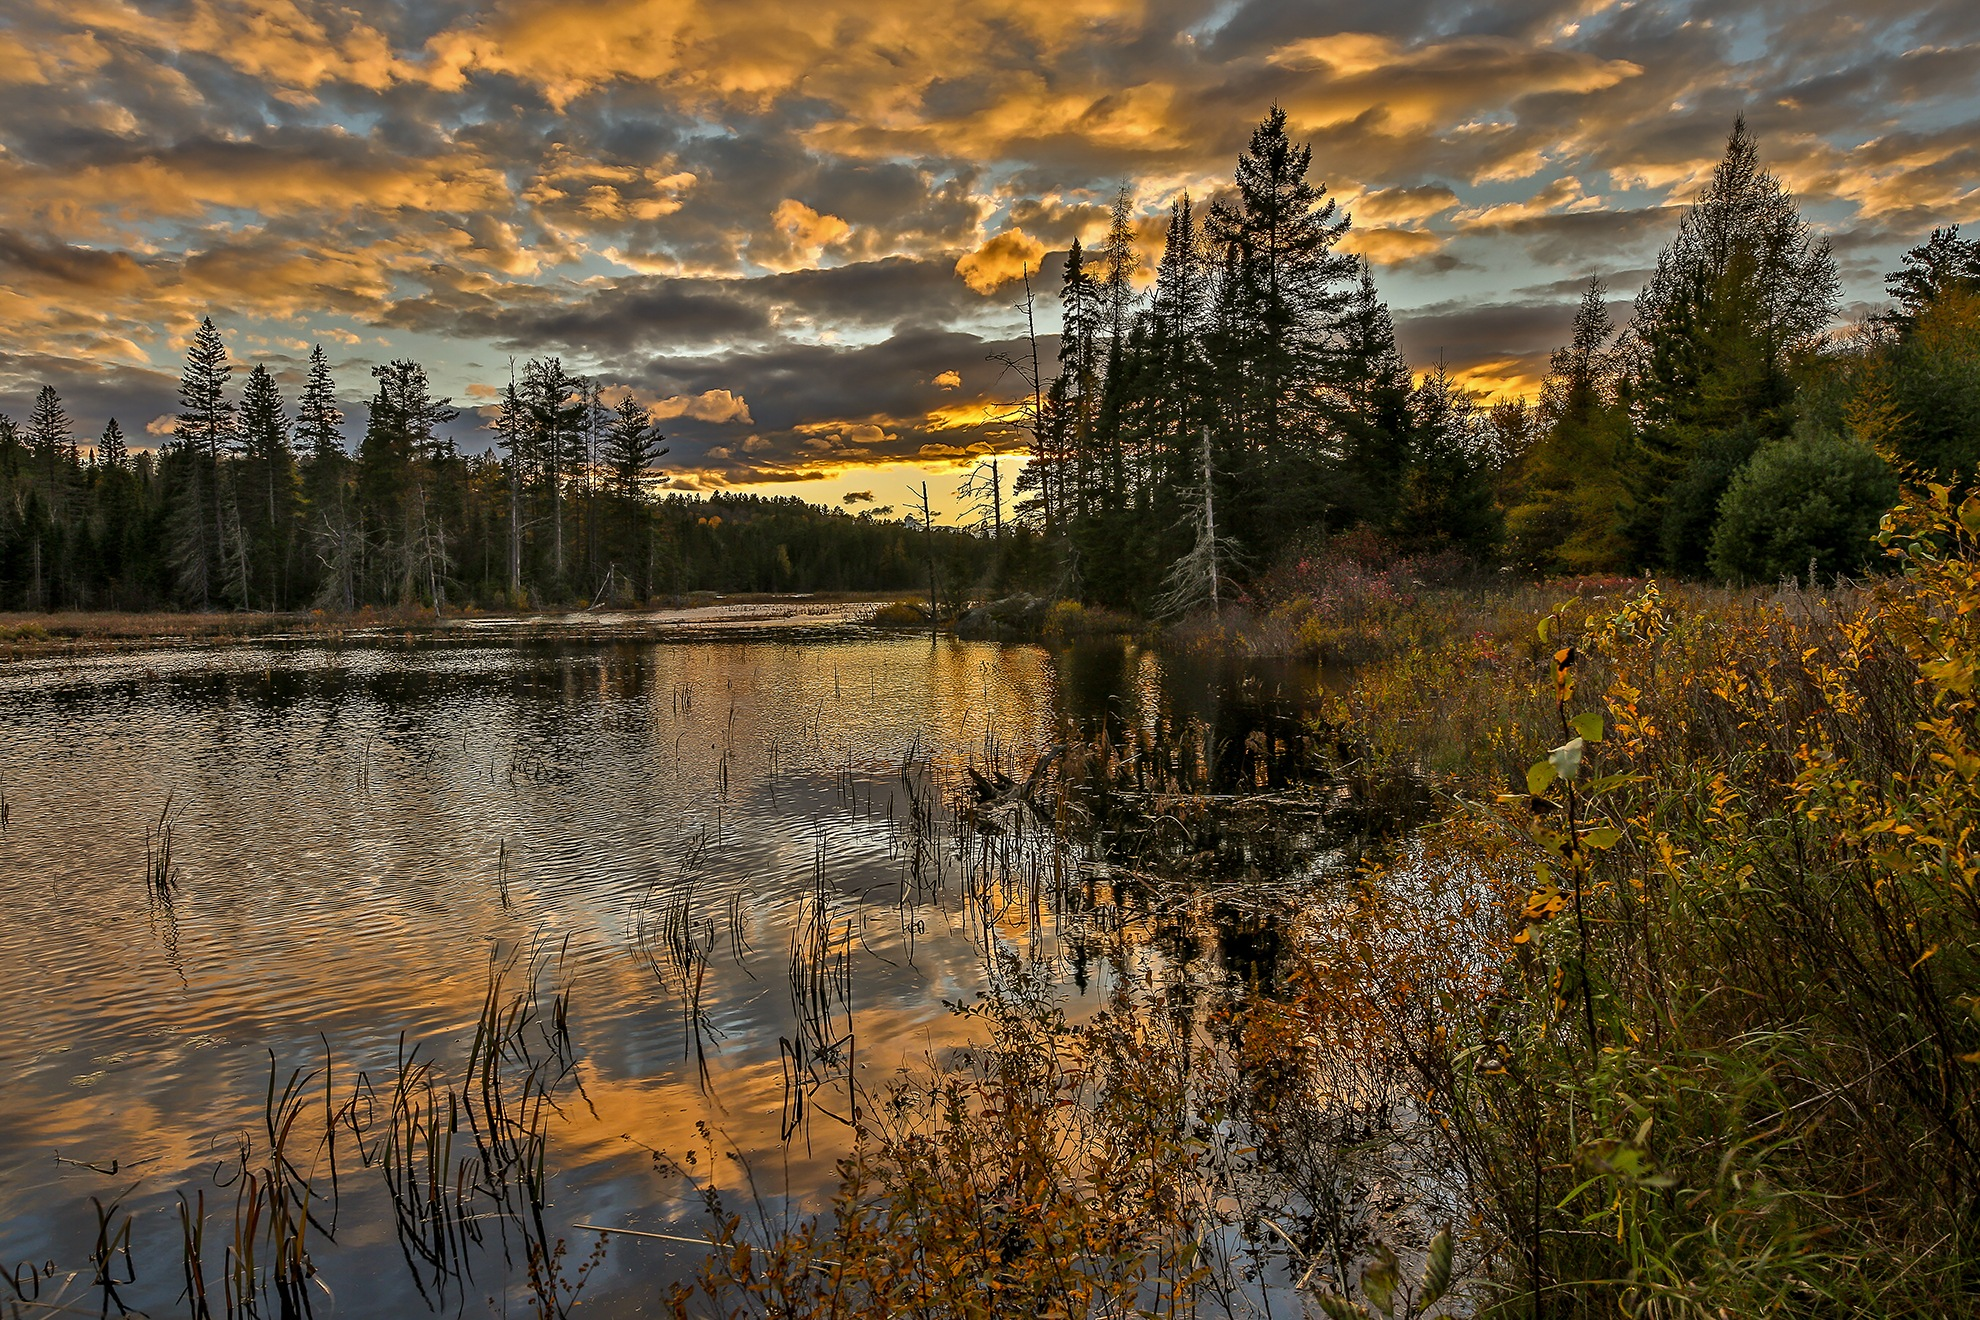 After Sunset by Steve Dunsford